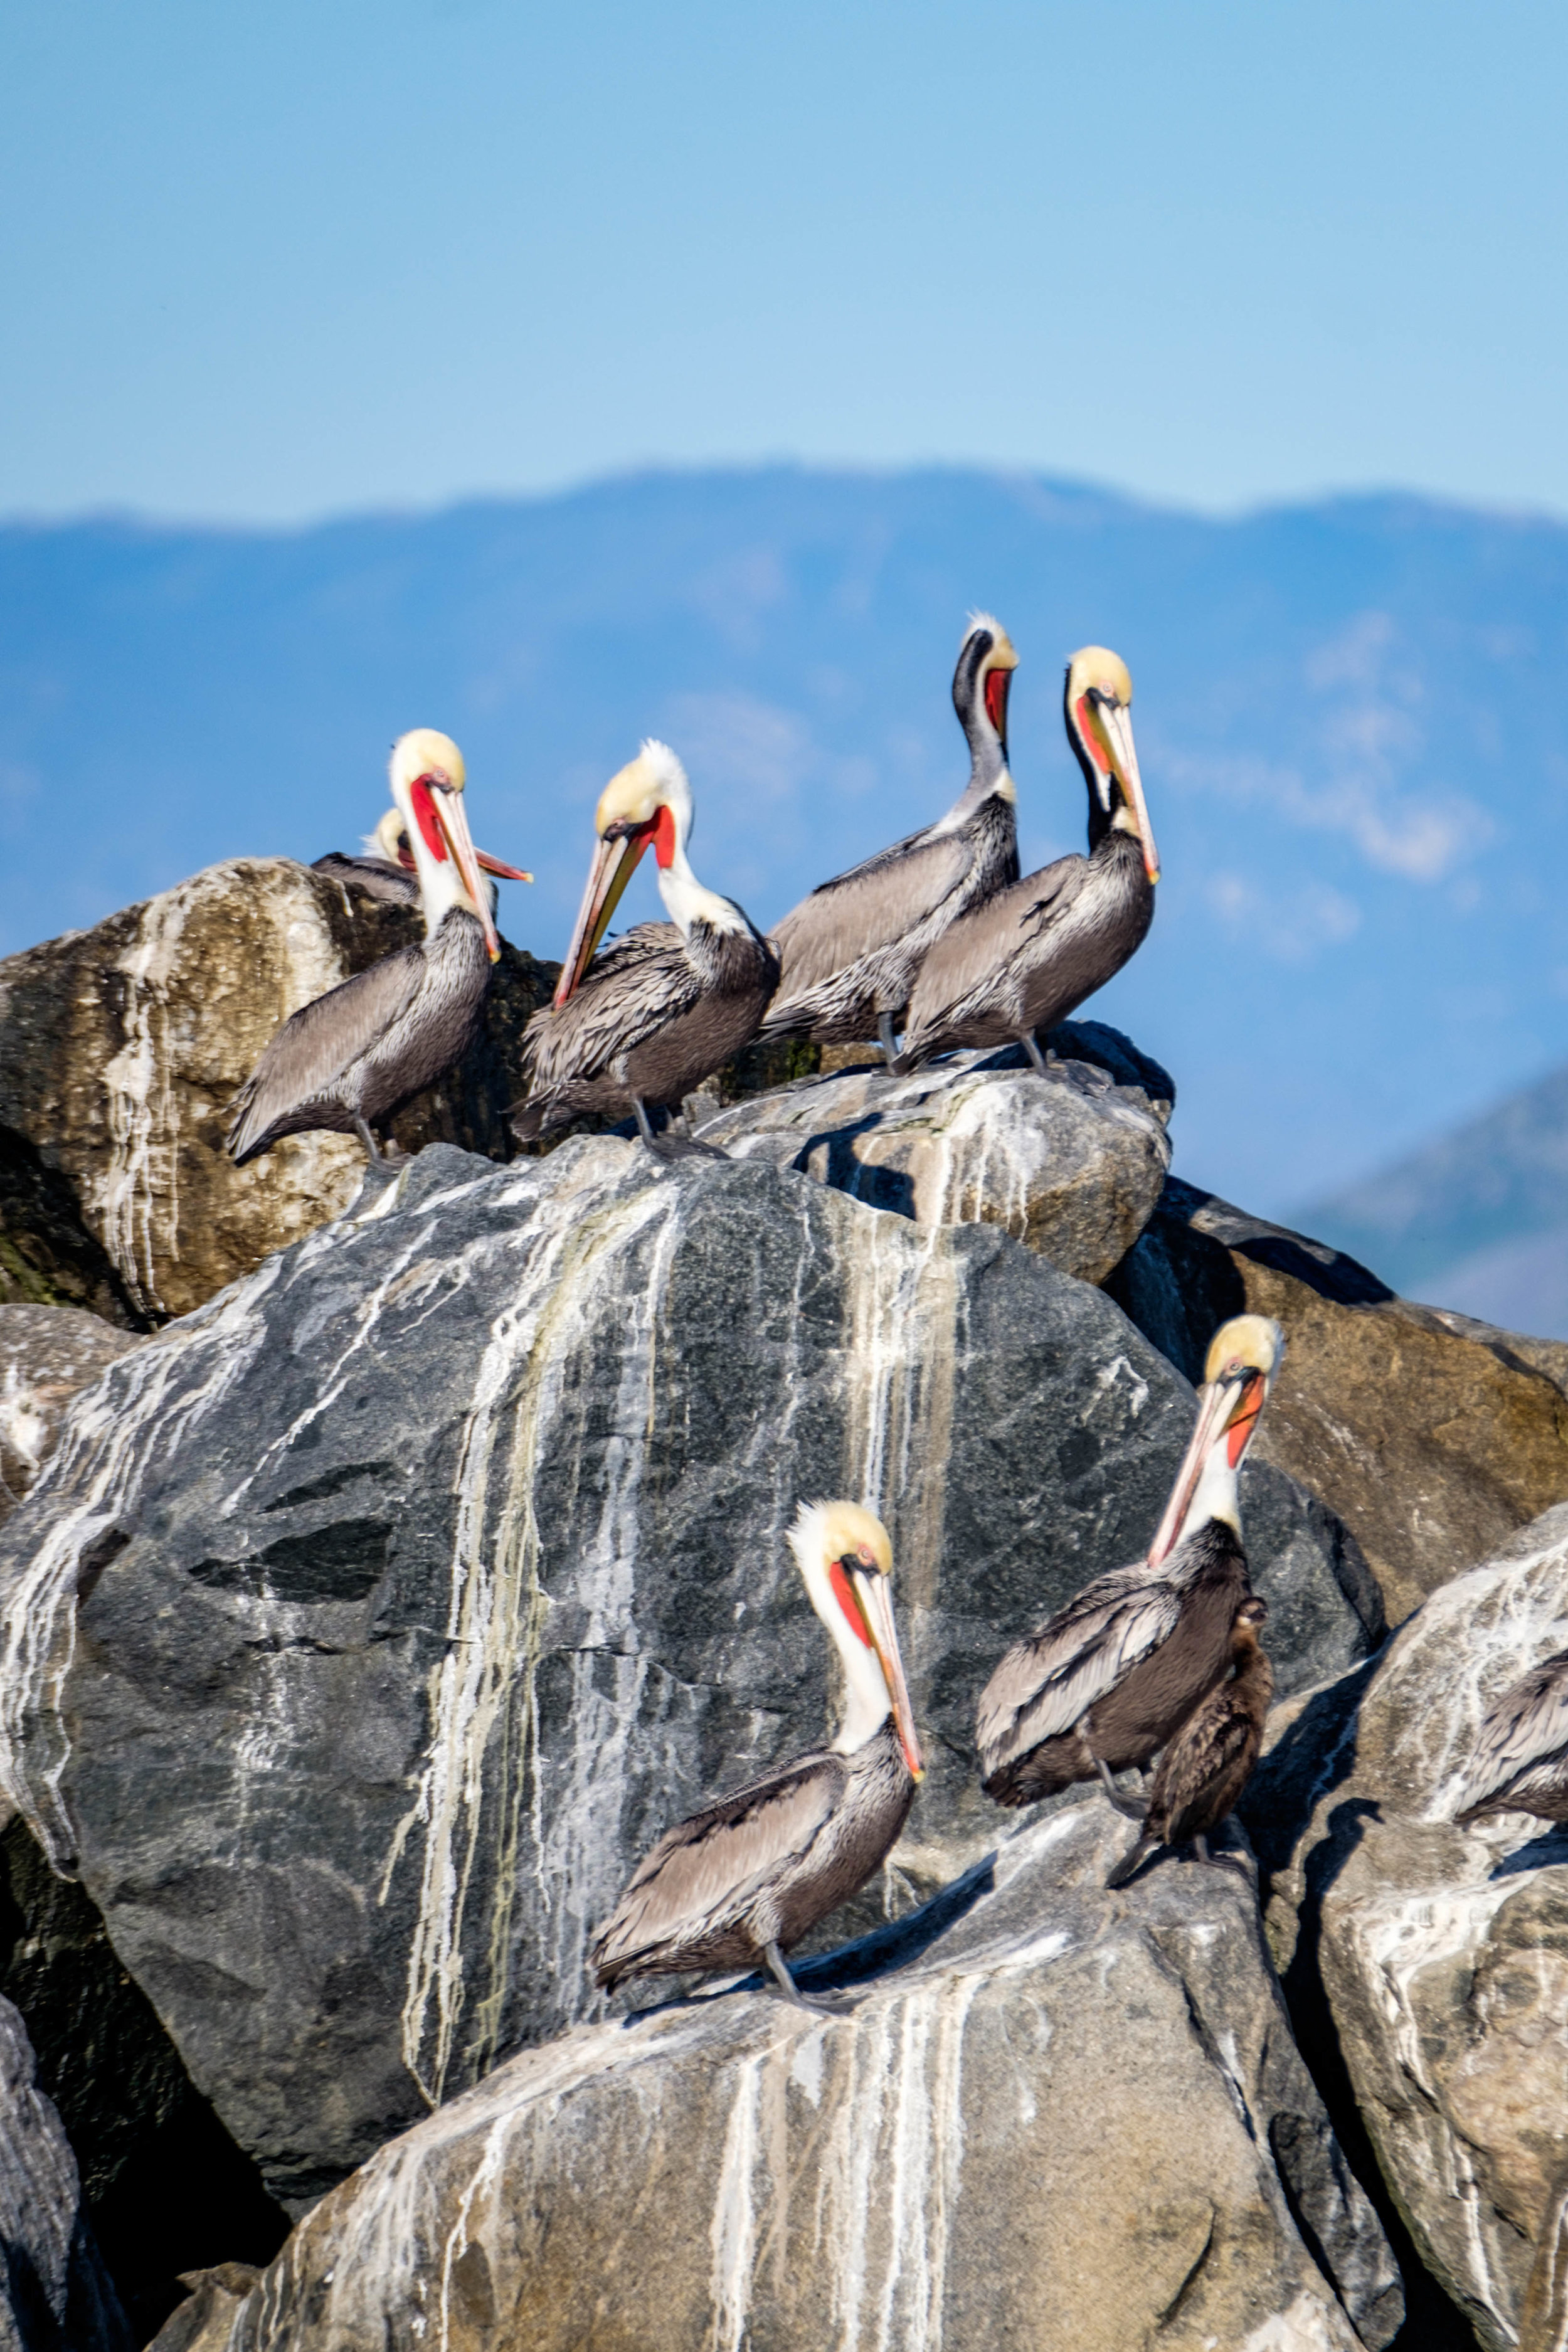 The largest breeding colony of California brown pelicans in the world can be found on the west side of Anancapa Island.